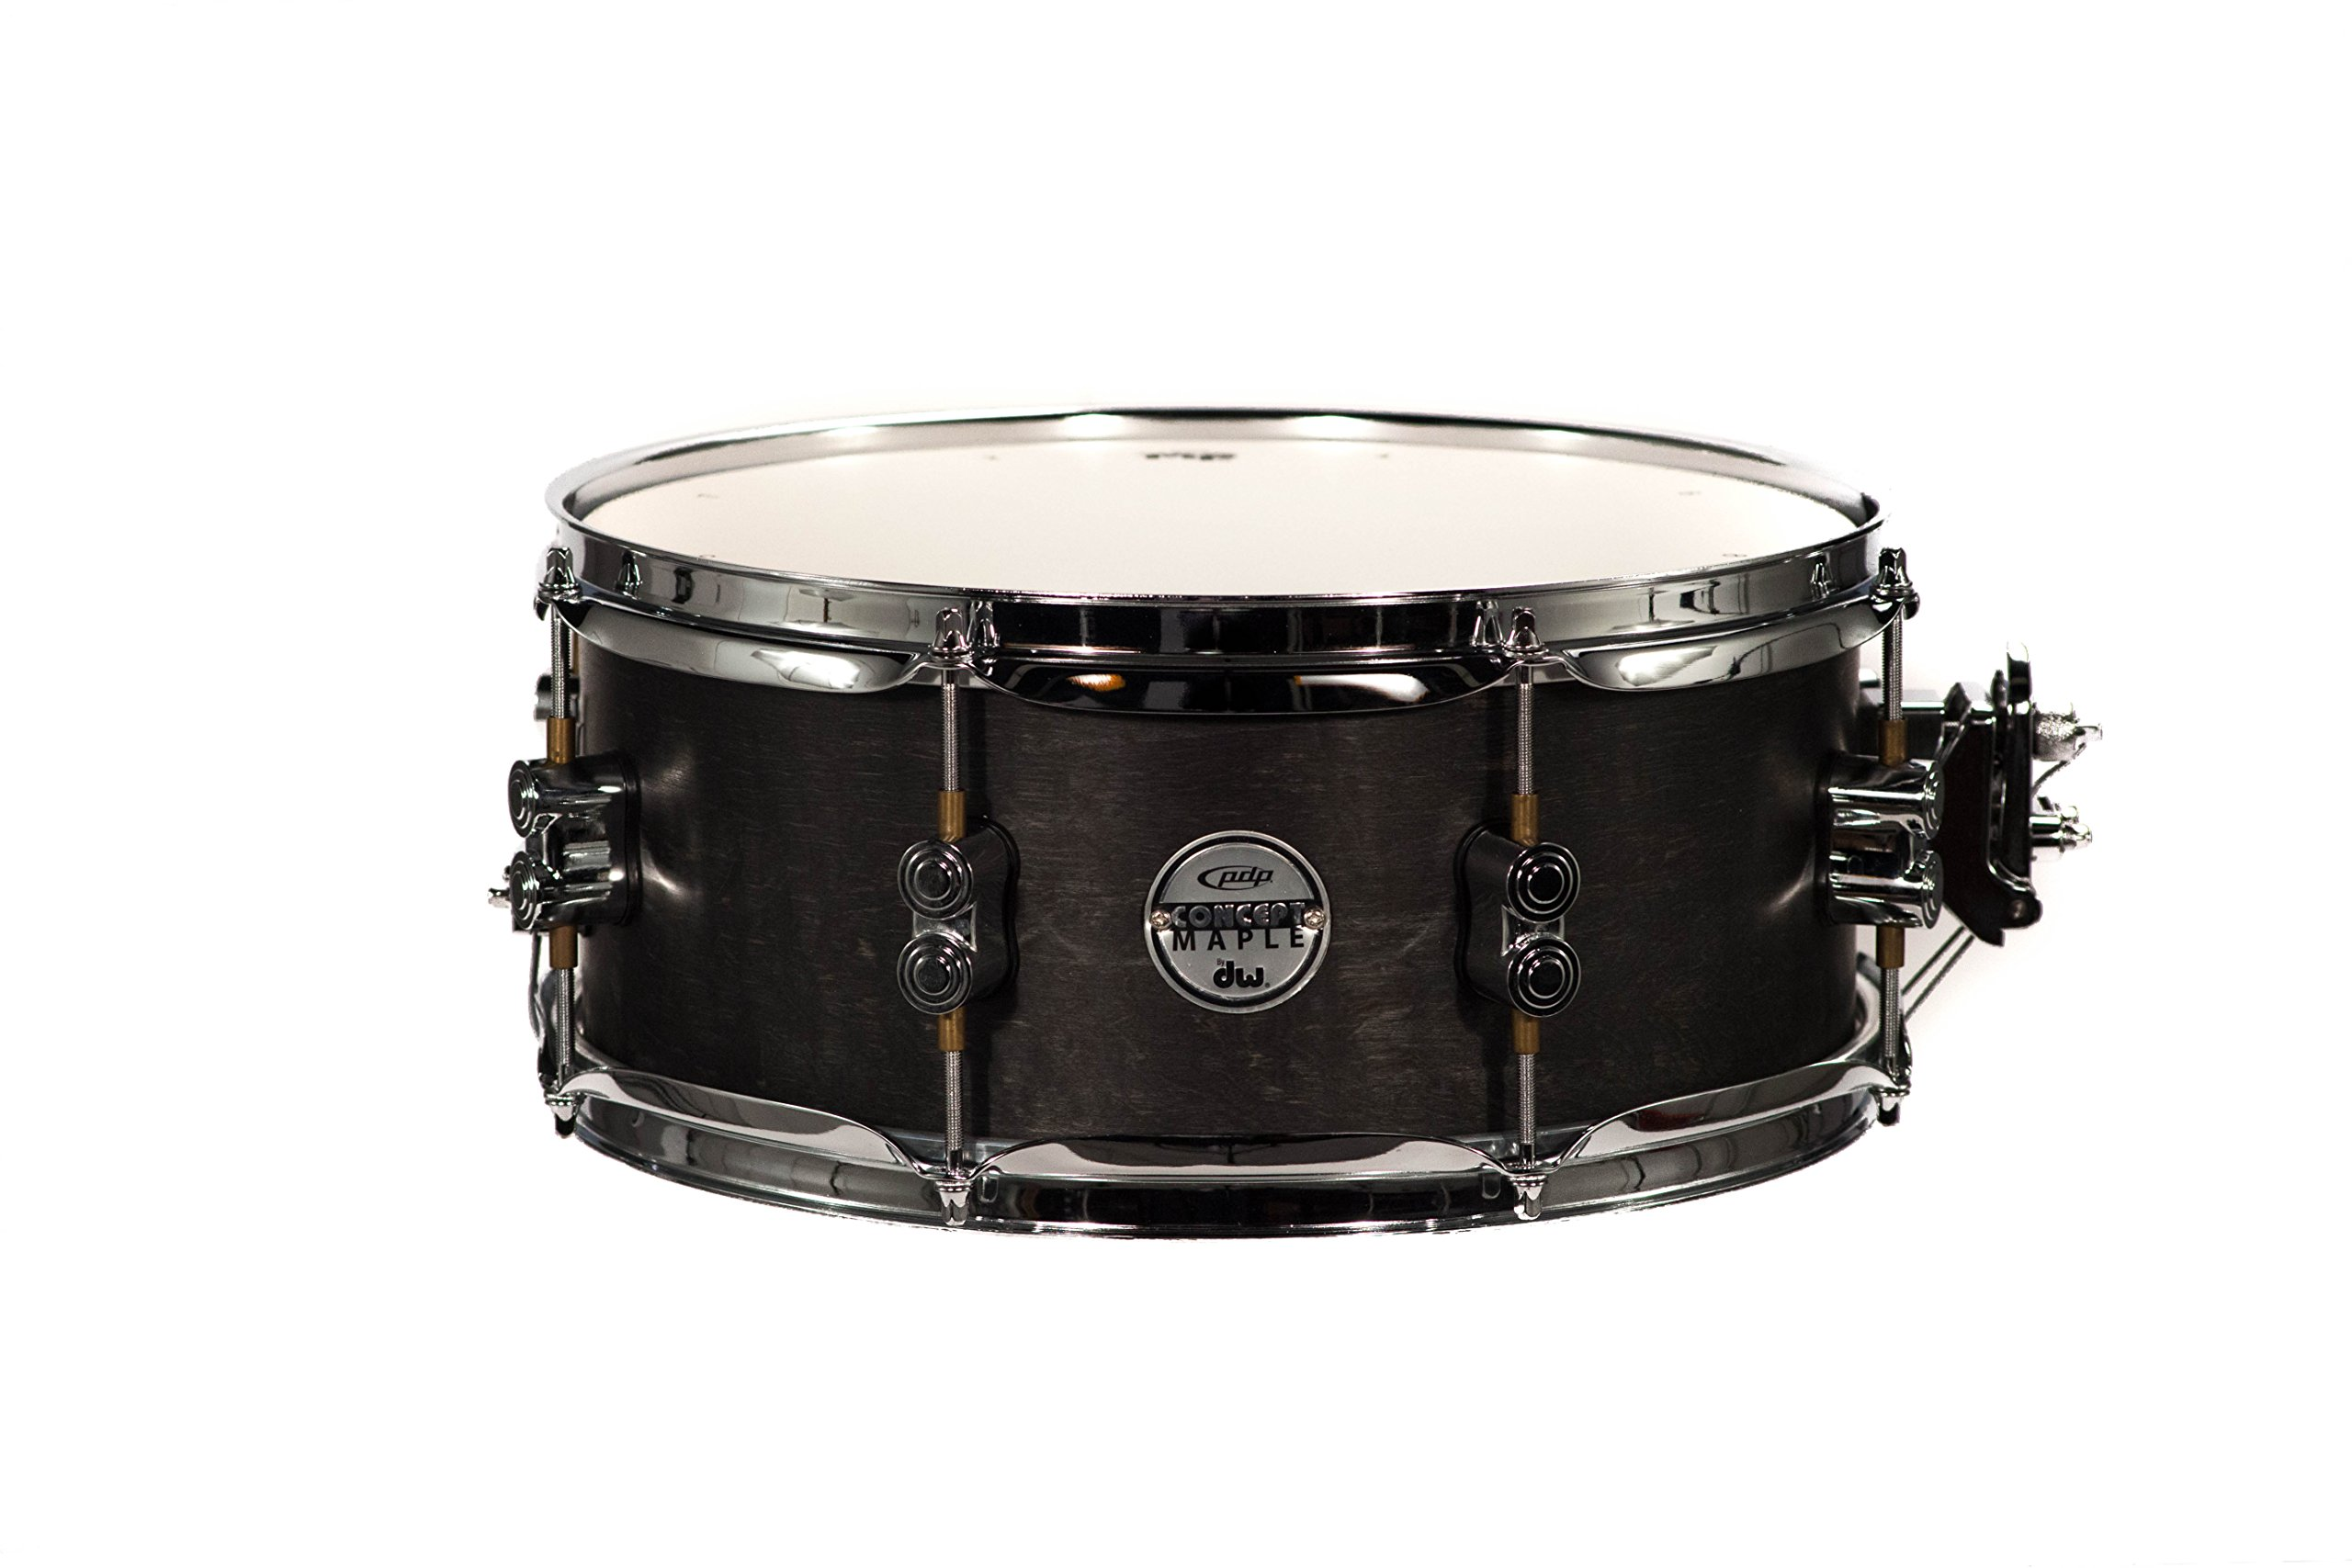 PDP By DW Black Wax Maple Snare Drum 5.5x13 by Pacific